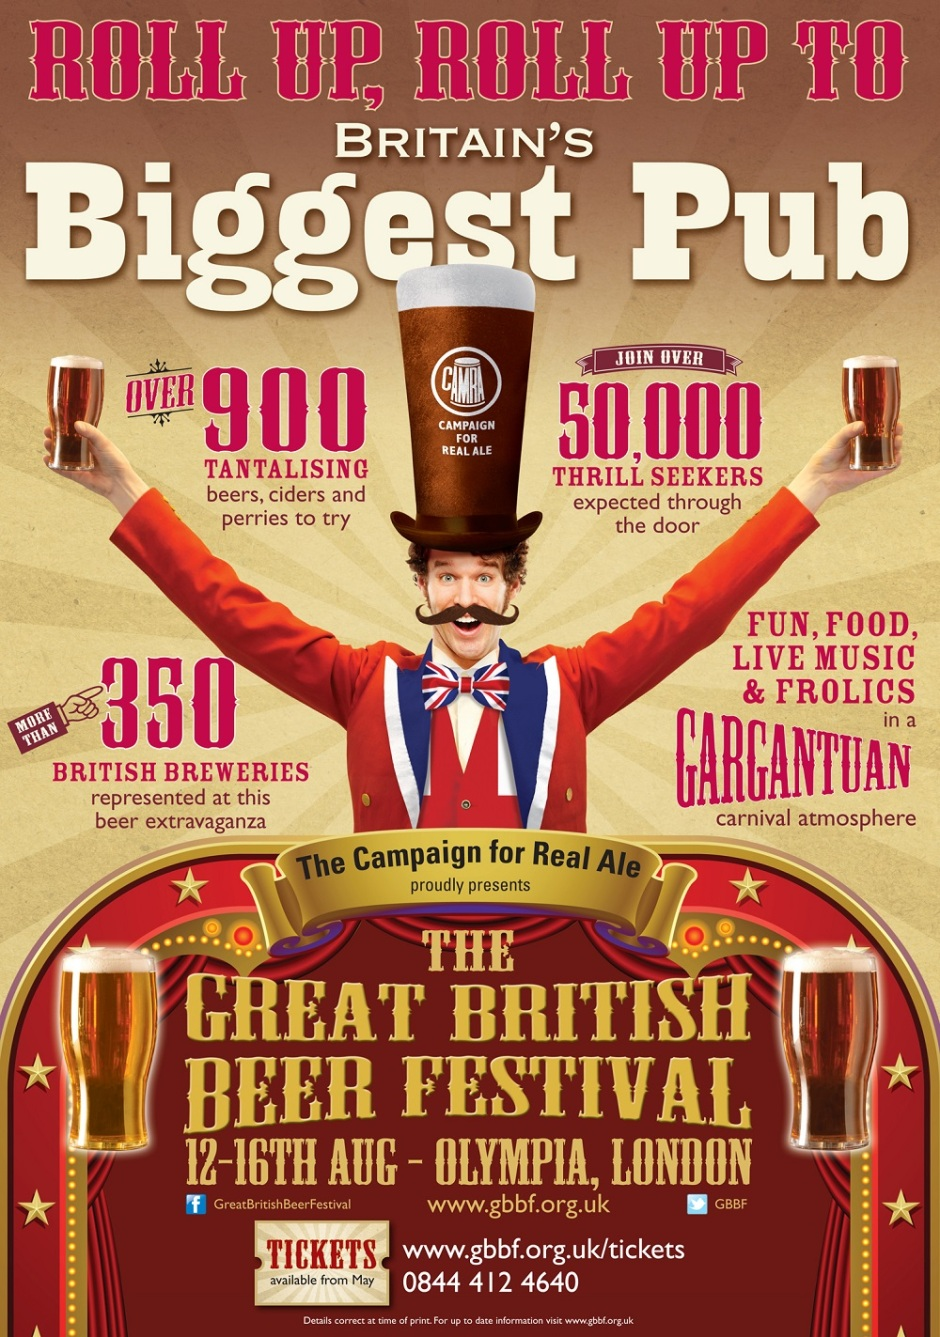 The Great Brisitsh Beer Festival 2014